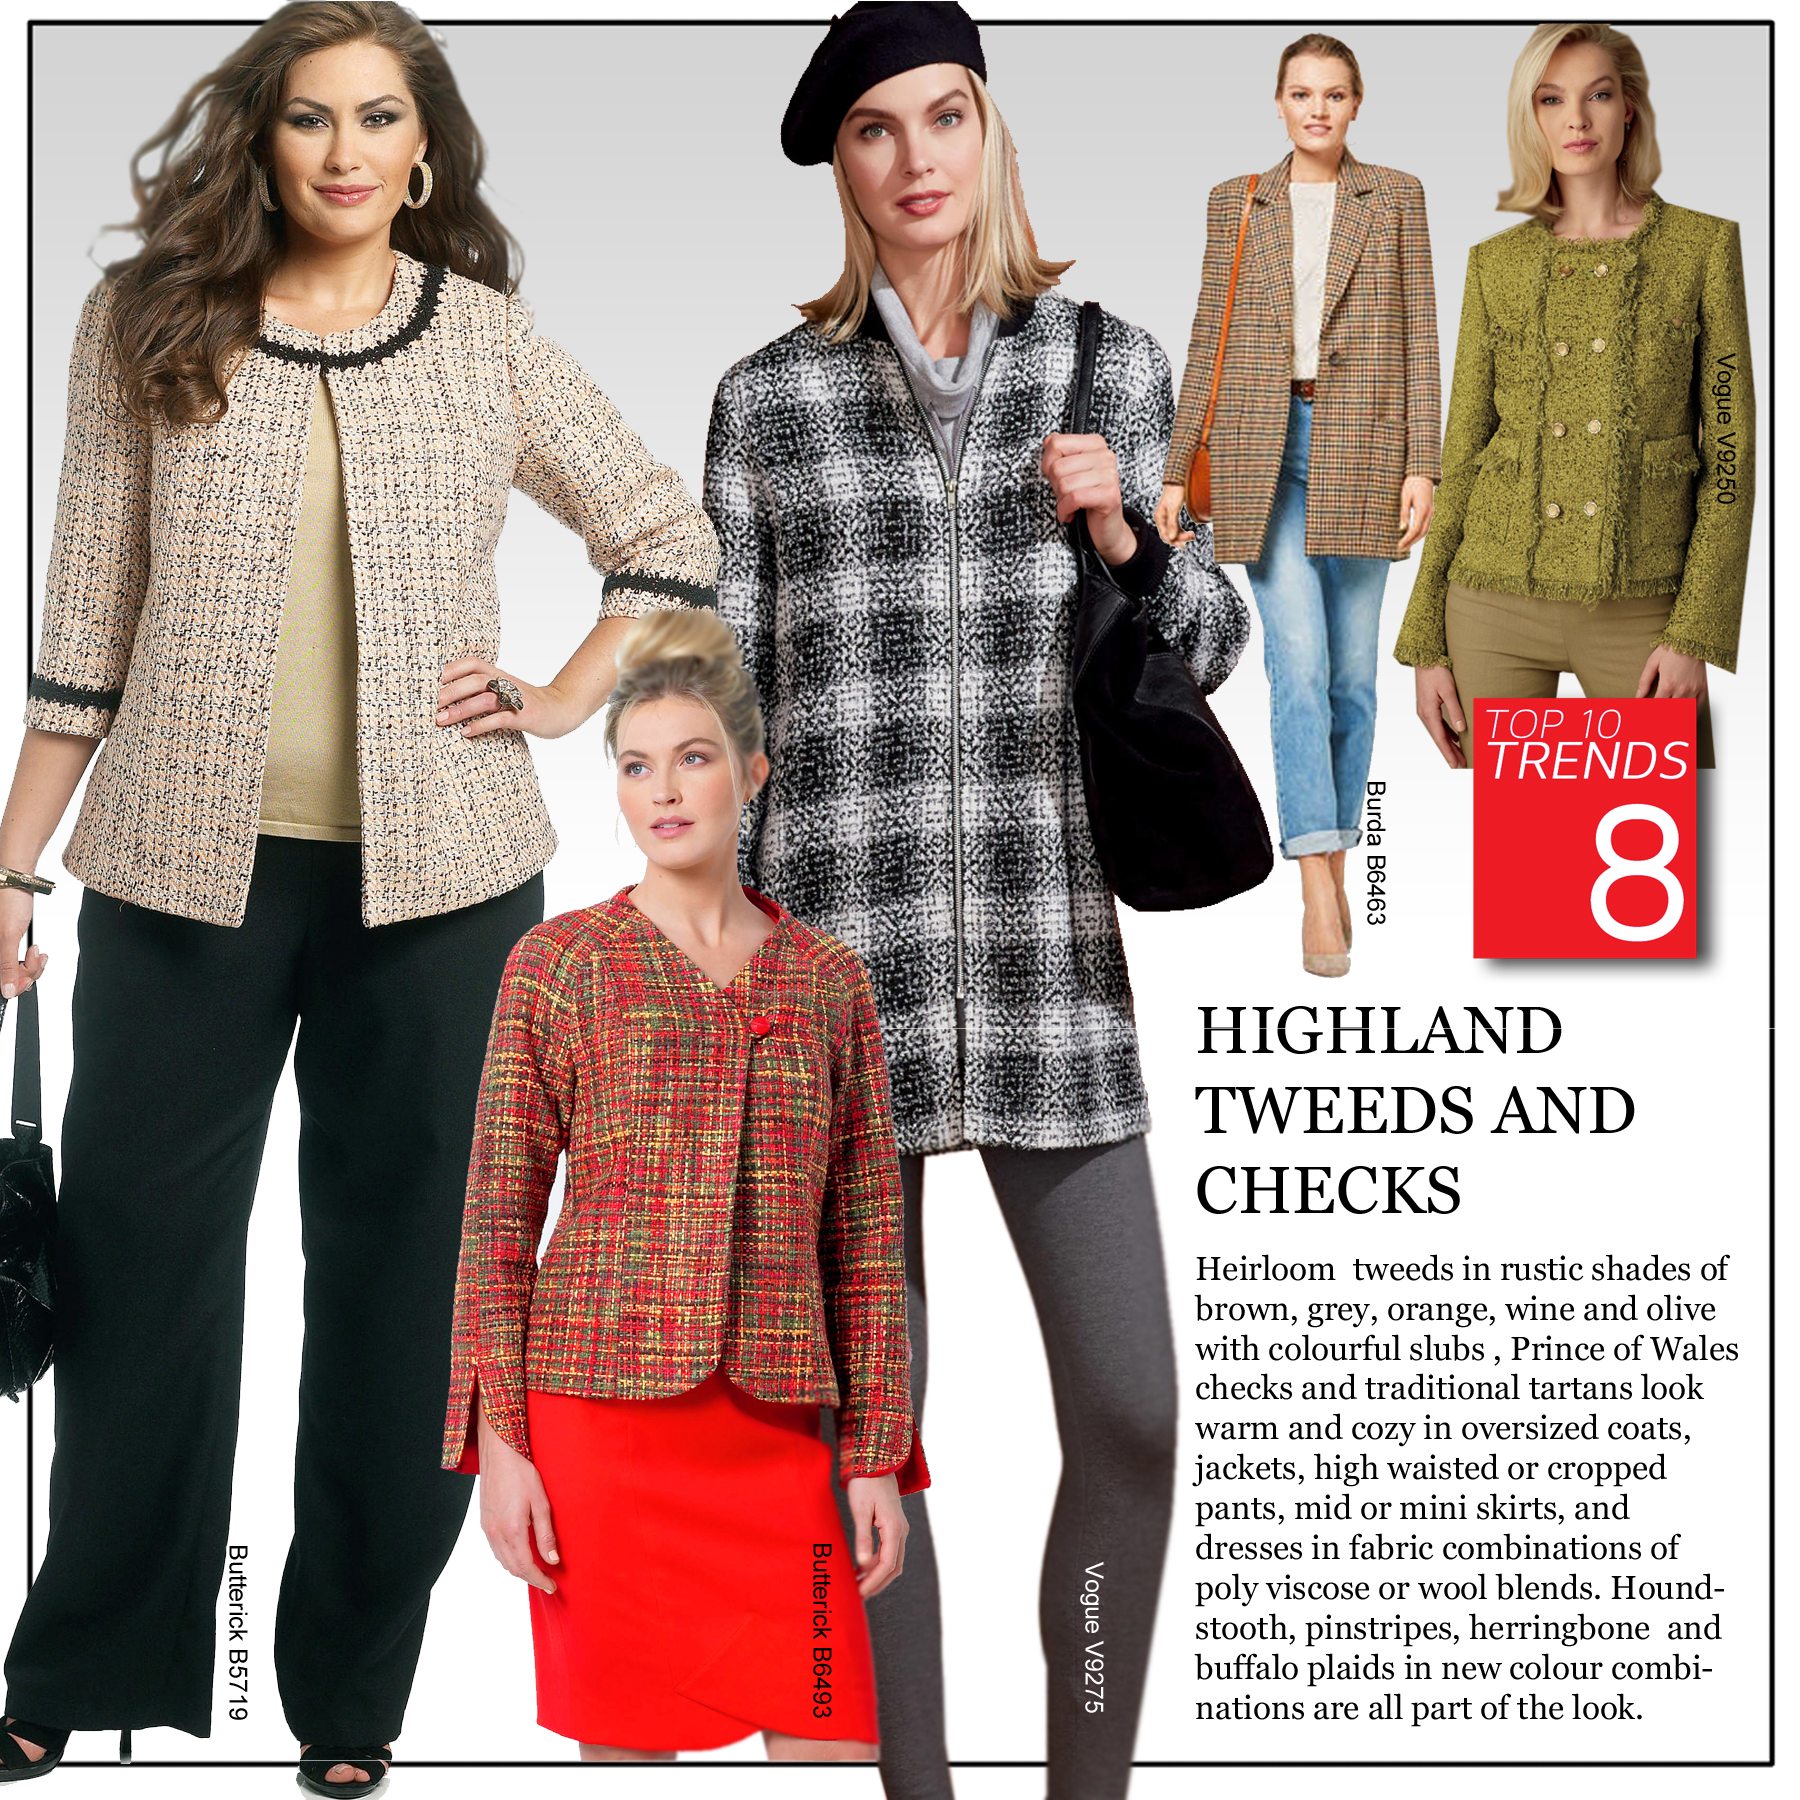 Trend 8 - Highland Tweeds and Checks